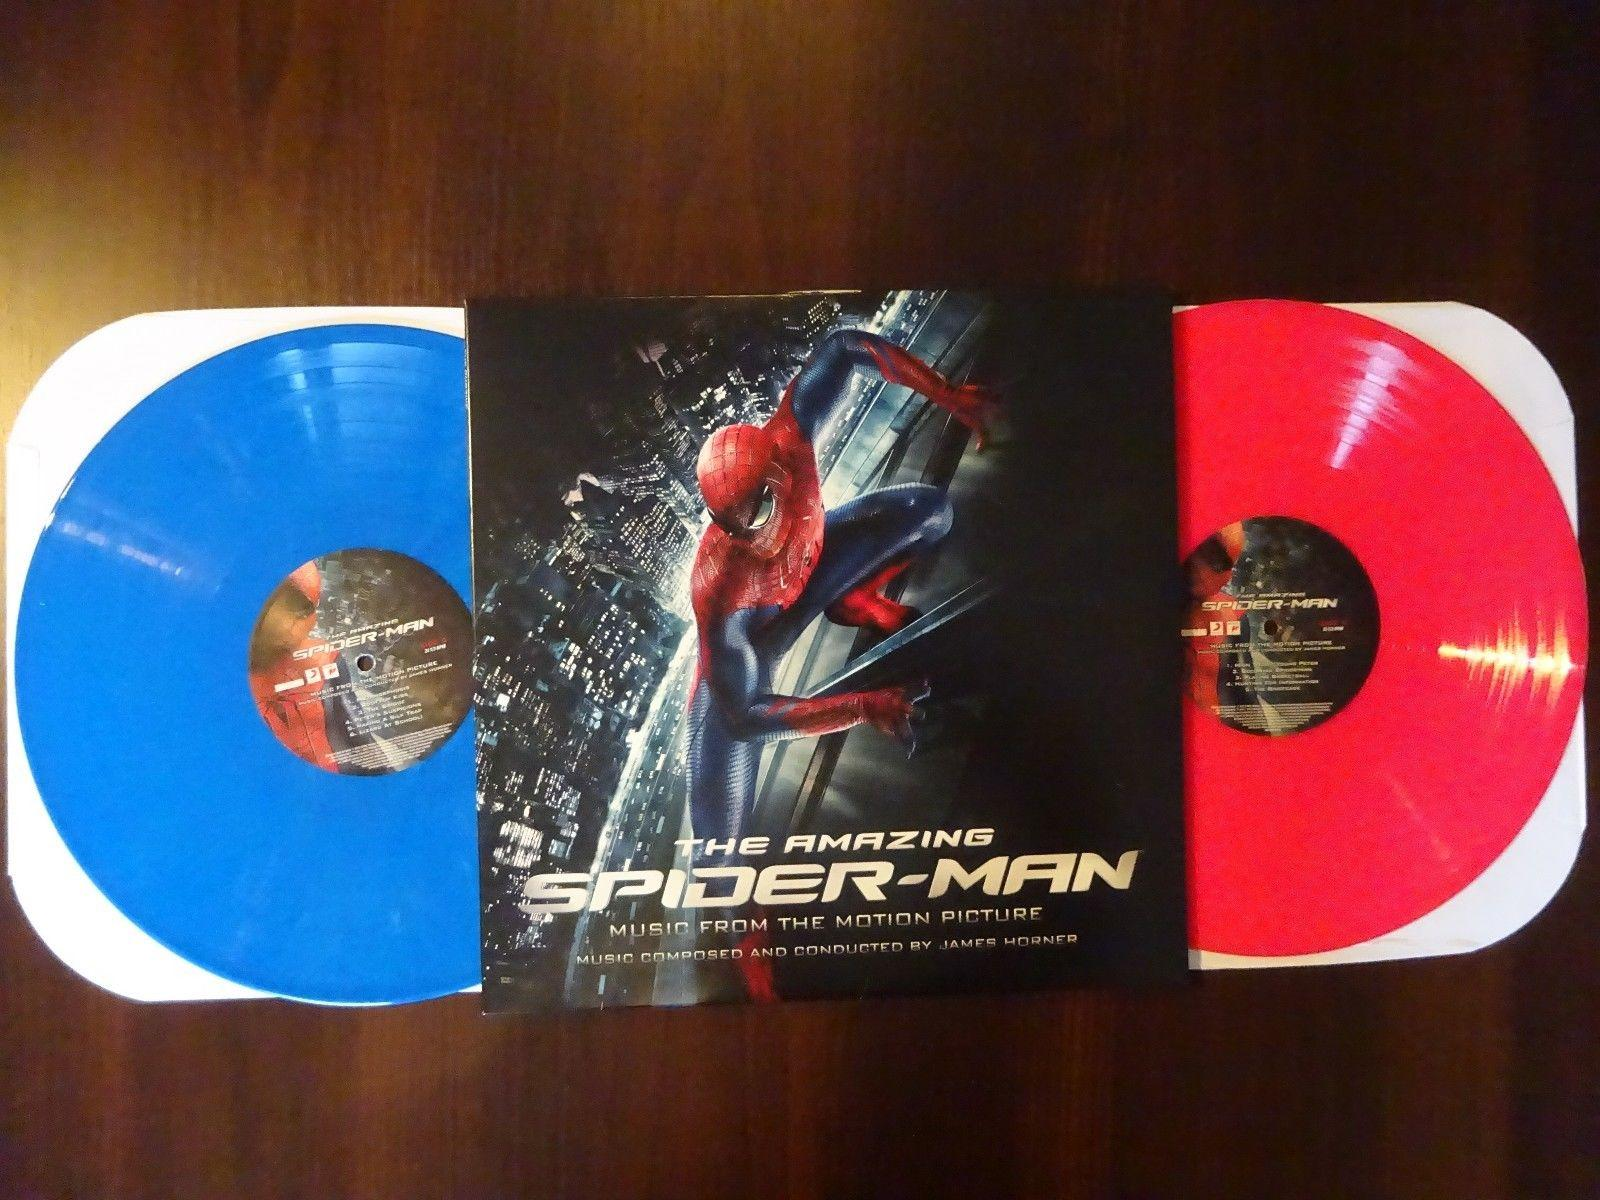 THE AMAZING SPIDERMAN  -   2x COLORED LP VINYL RECORD SOUNDTRACK OST LIMITED 500